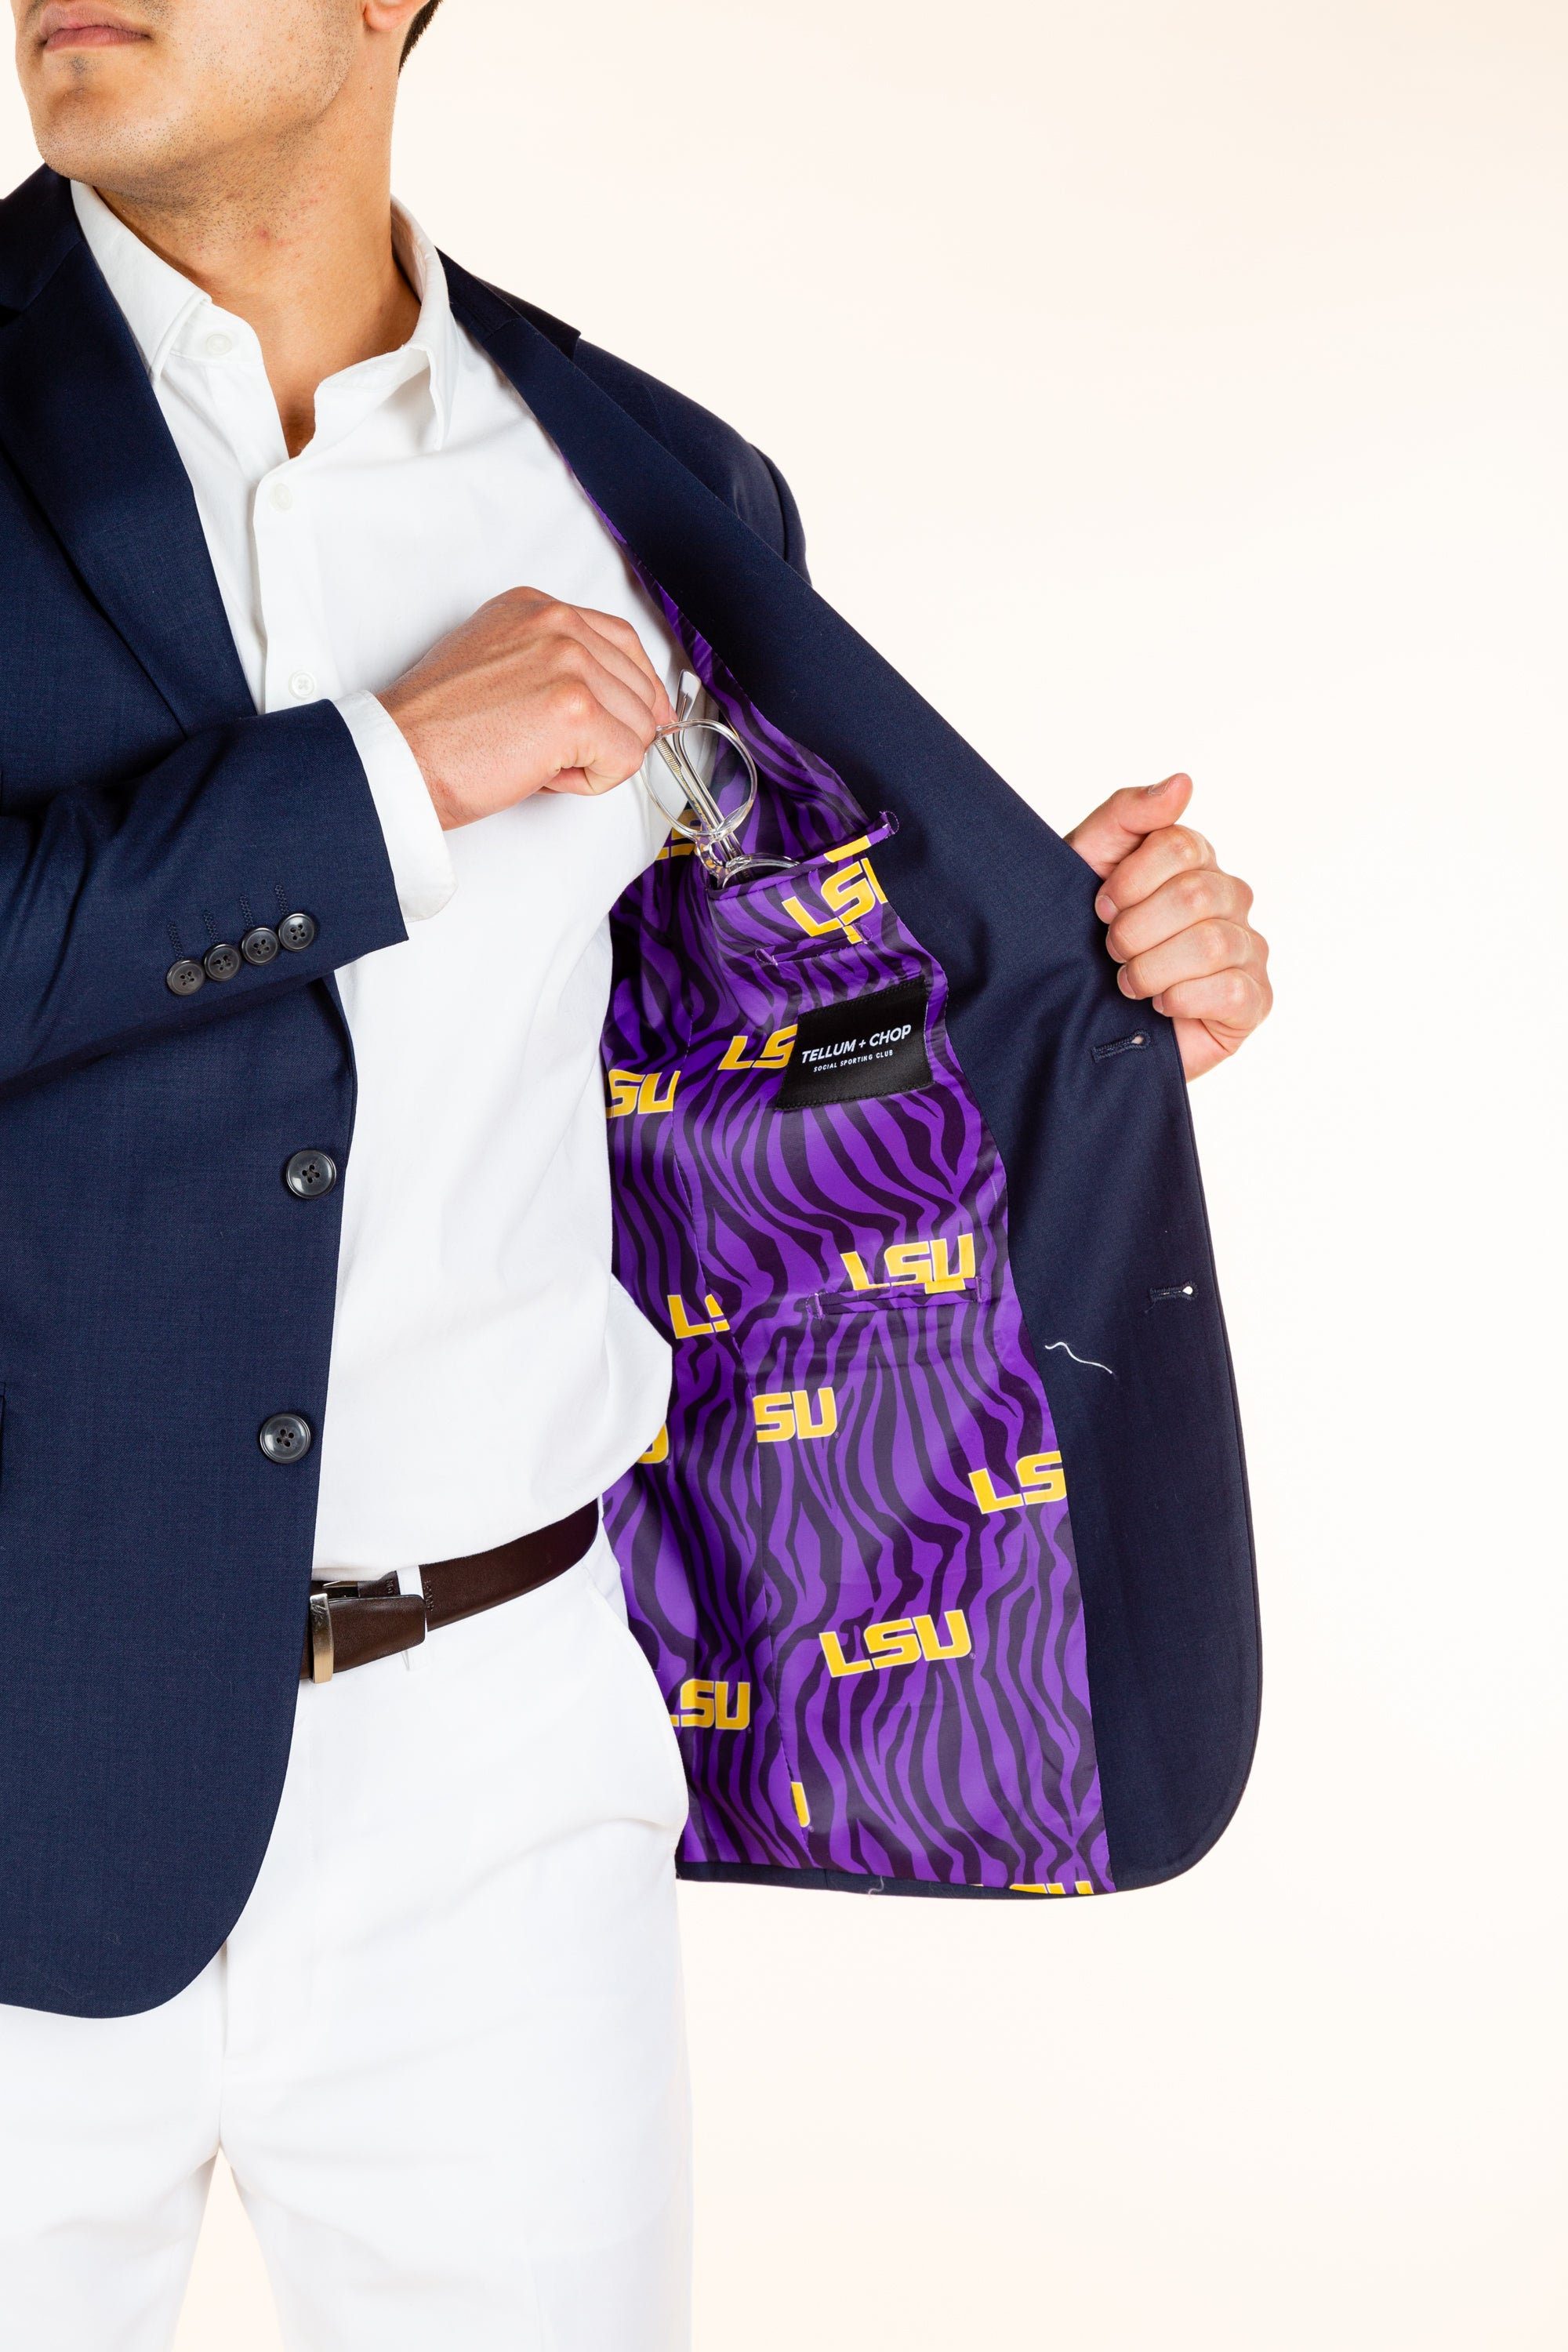 LSU purple lined madison blazer